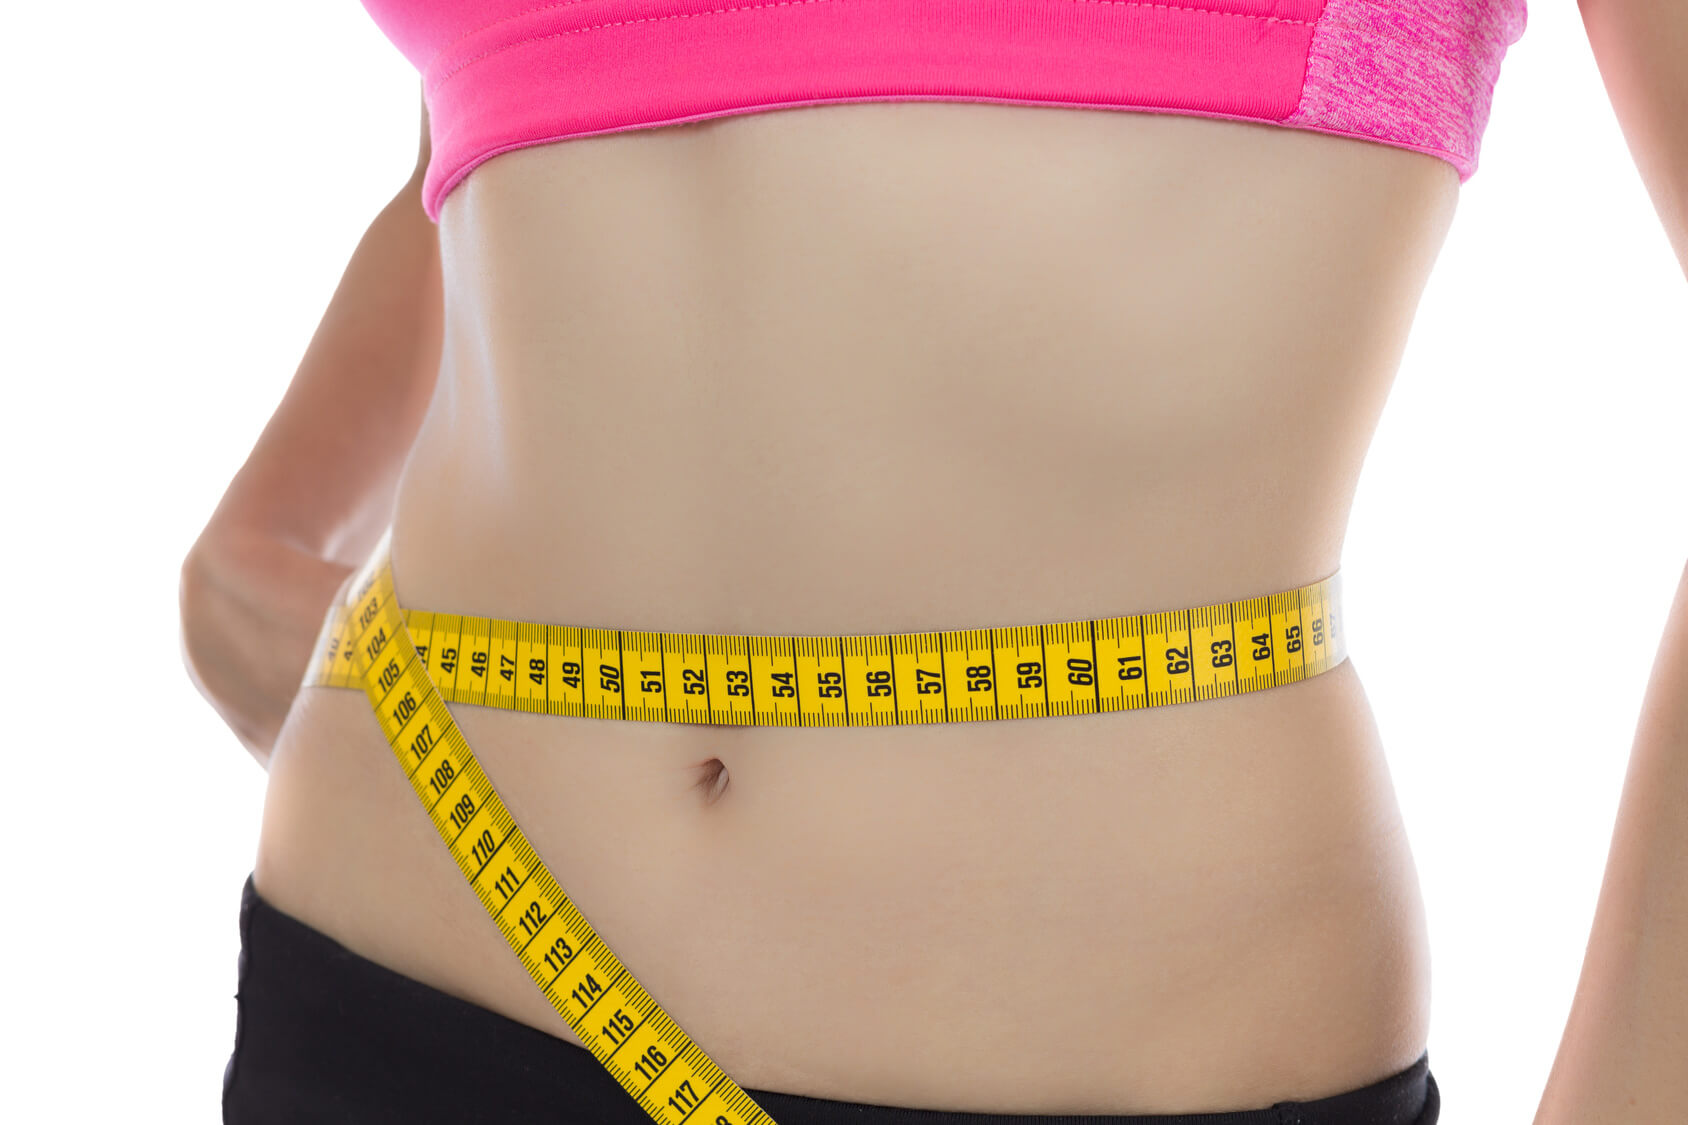 Cherokee Women S Health Has Created A Medical Weight Loss Program Specifically For